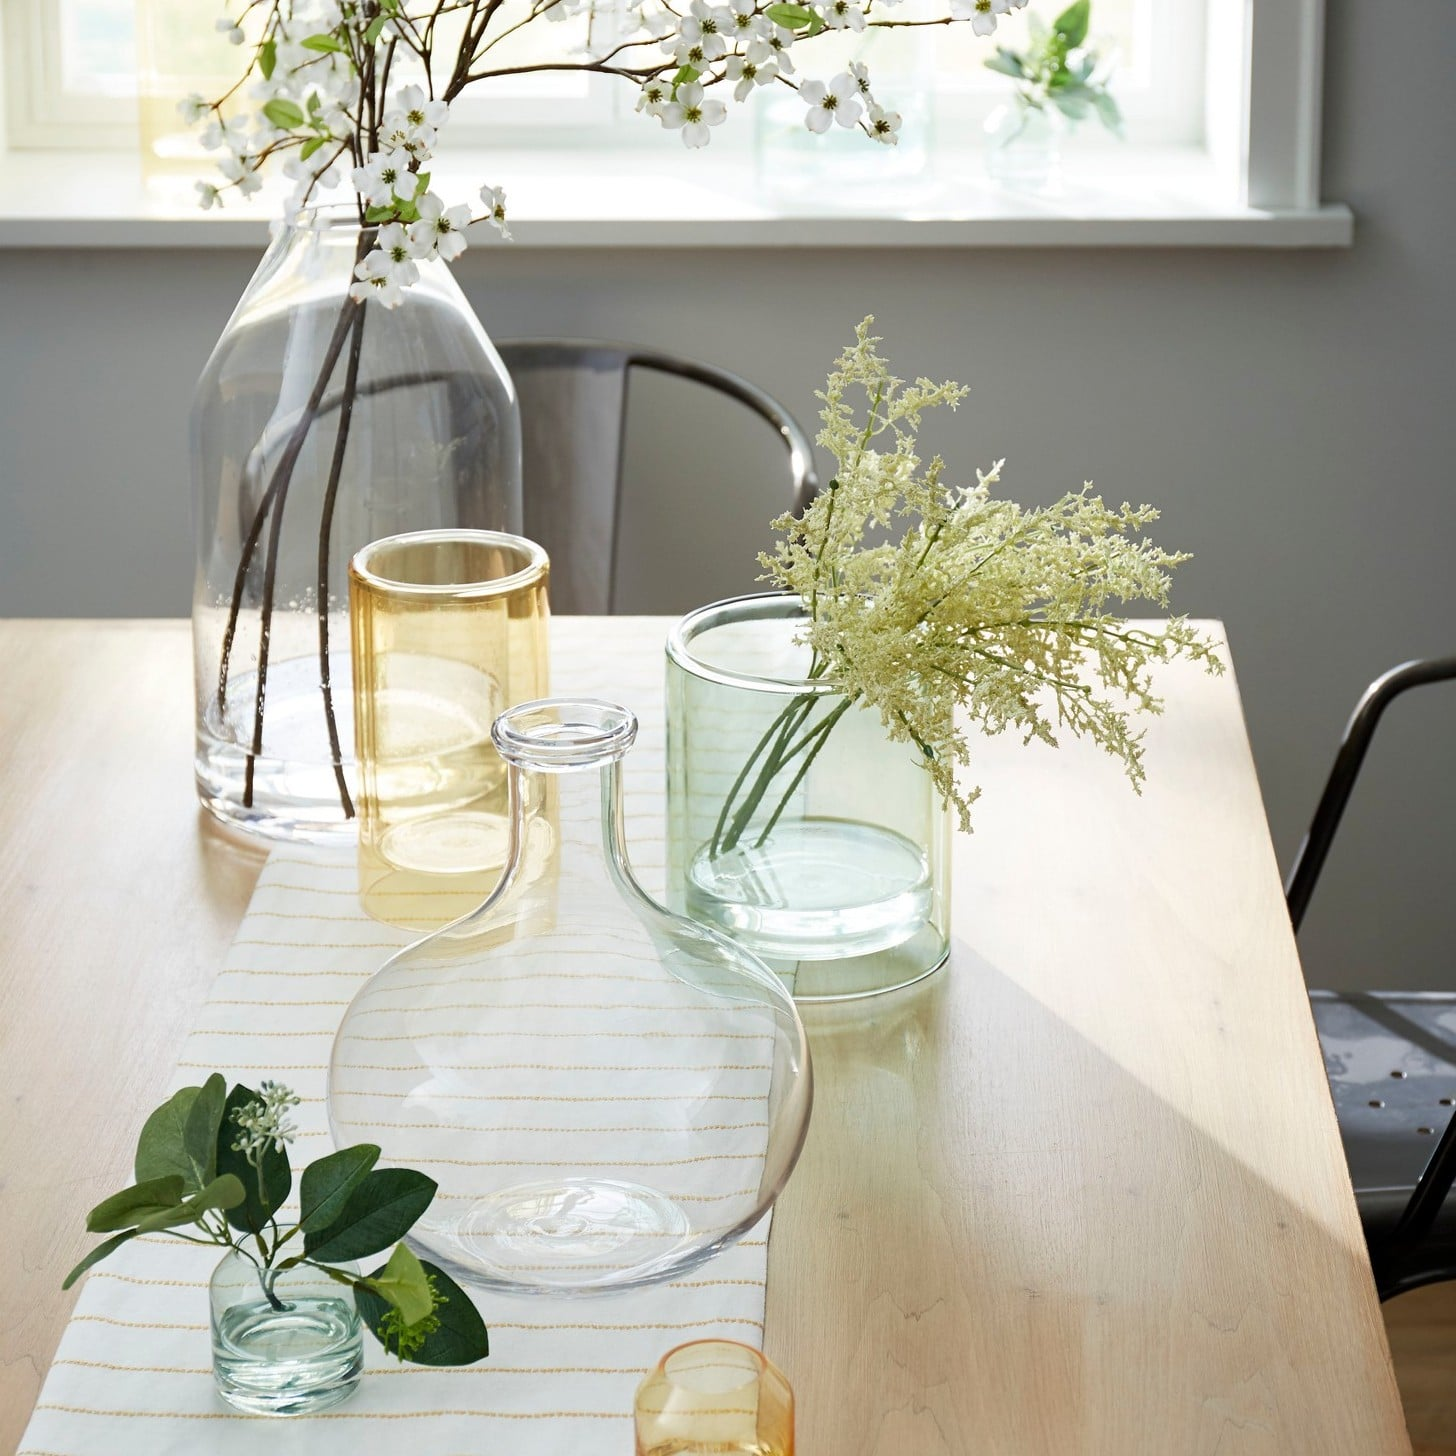 Chip and joanna gaines target collection spring 2018 popsugar moms reviewsmspy